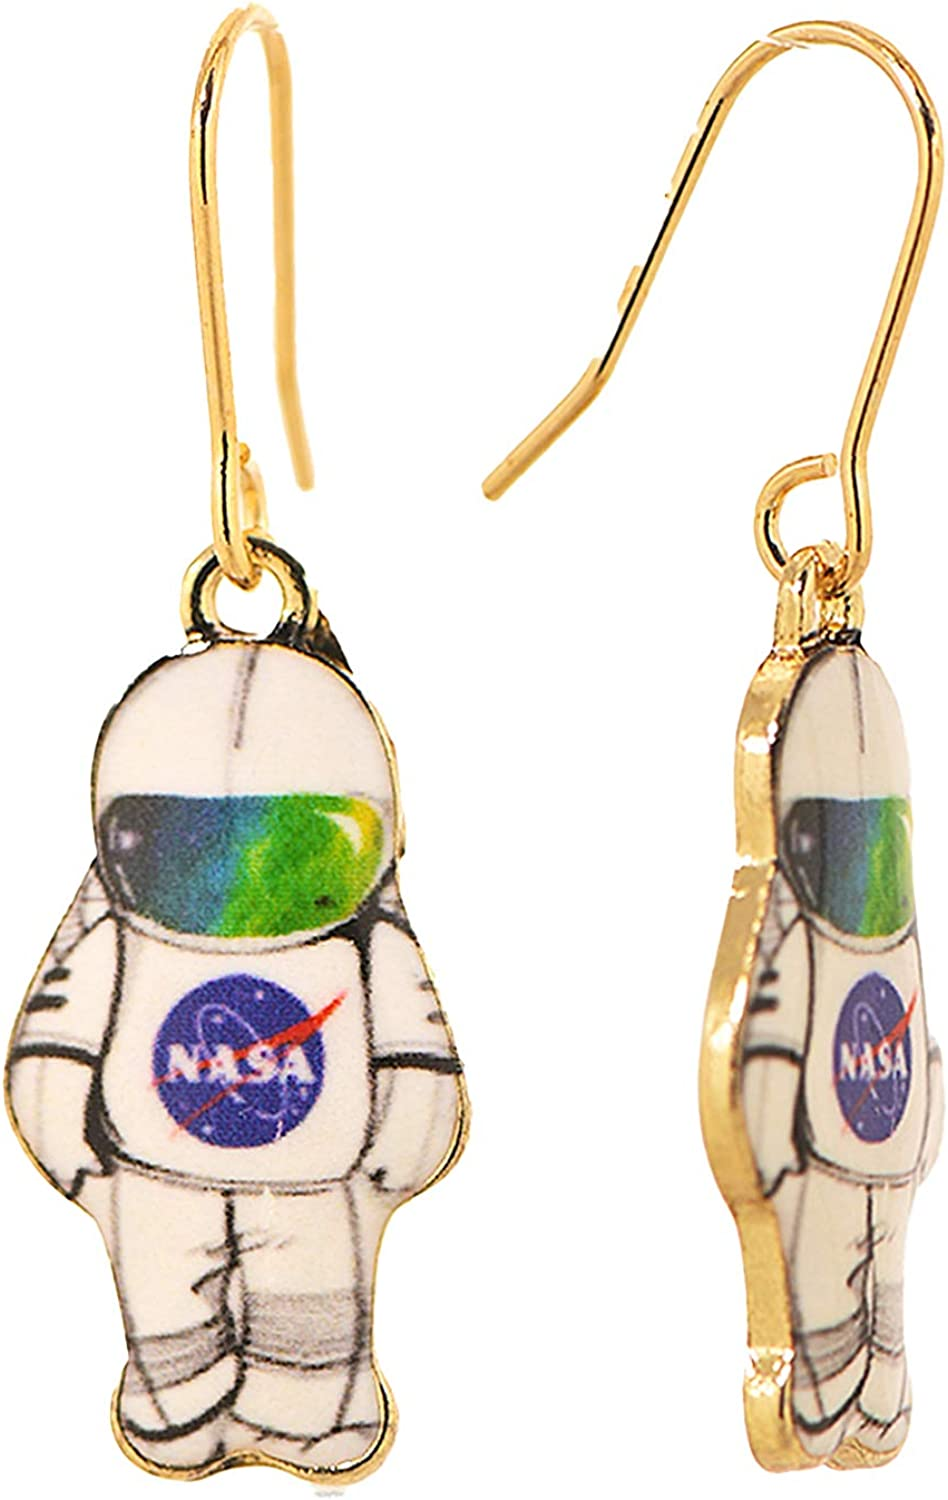 Spinningdiasy Low price Across Universe Astronaut Aspiring For Price reduction Earrings